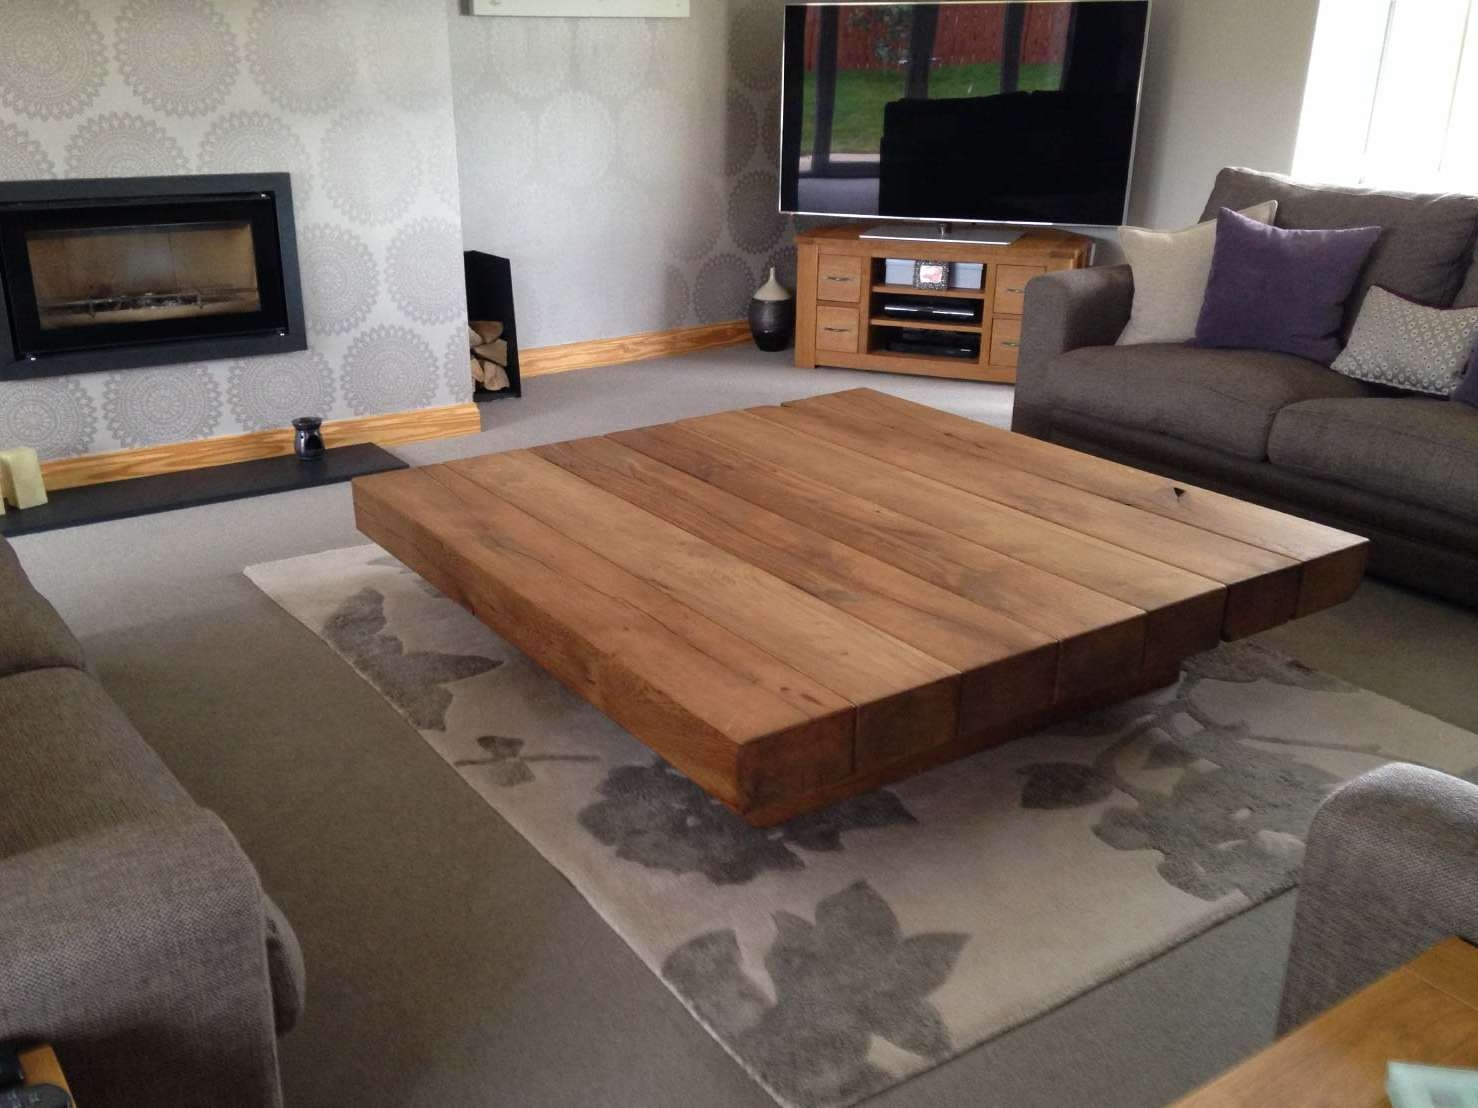 Abacus Tables In Current Large Oak Coffee Tables (View 8 of 20)